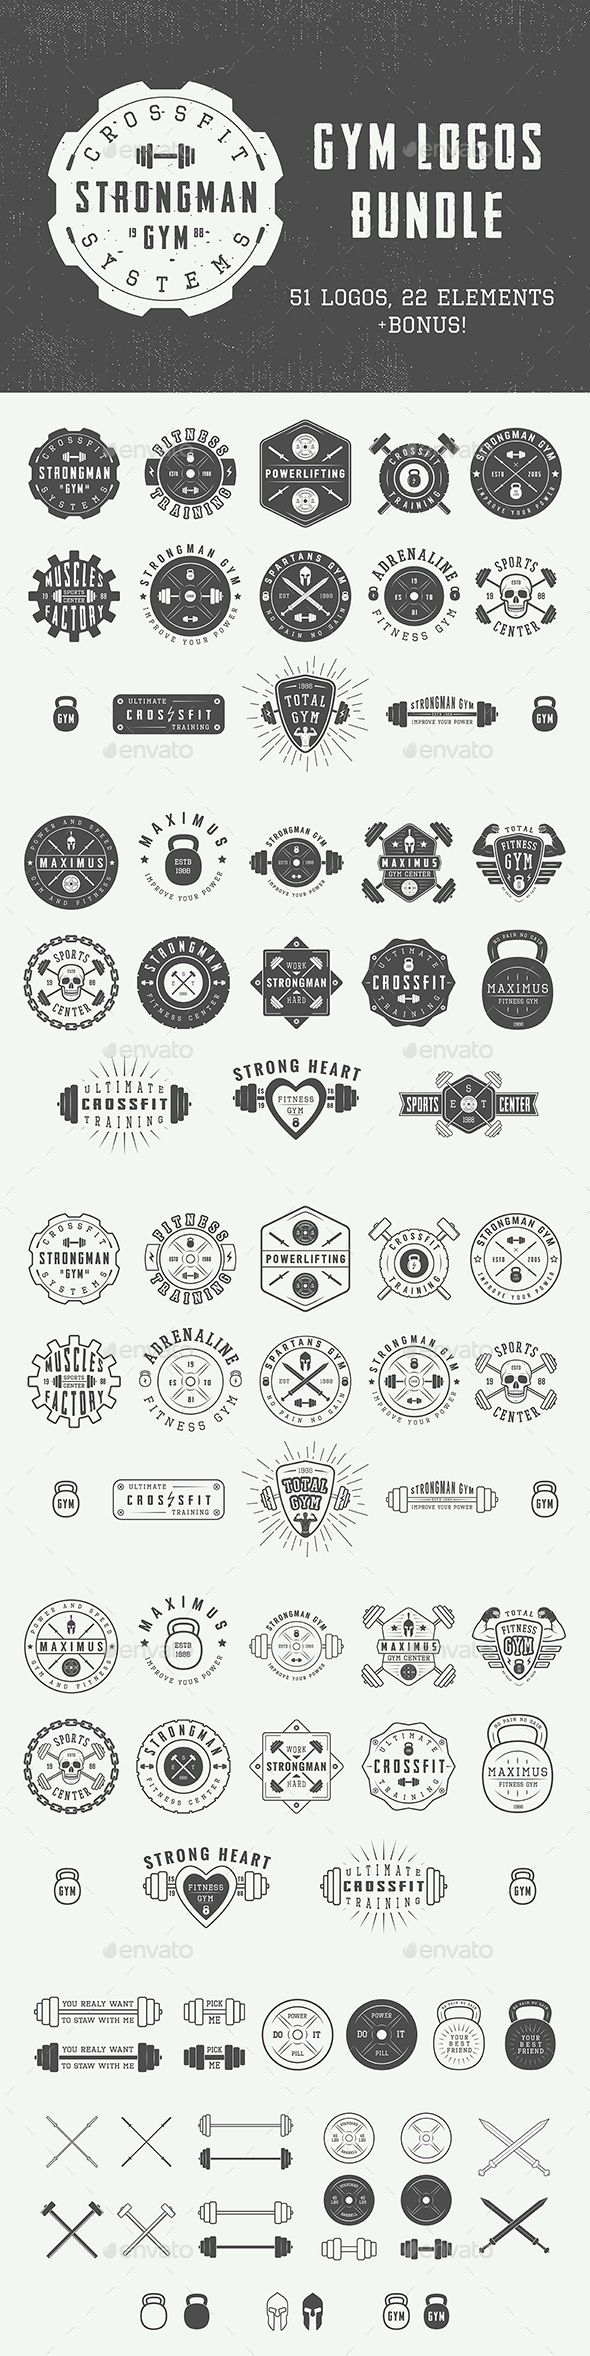 Vintage Gym Emblems Set of vintage gym logos, badges, emblems and design elements Can be used for logo design, badge design, shop sign and much more. You get: 51 logos 22 design elements 8 fun motivational posters Easy to modify, edit, re-size, vectors available in AI and EPS formats, all 100% editable. Text 100% editable and can be easely removed. All files are in AI, EPS, PSD and JPG formats. Fonts and mock-ups are not included. List of used fonts: Octin Vintage Headliner 45 Promesh Two La